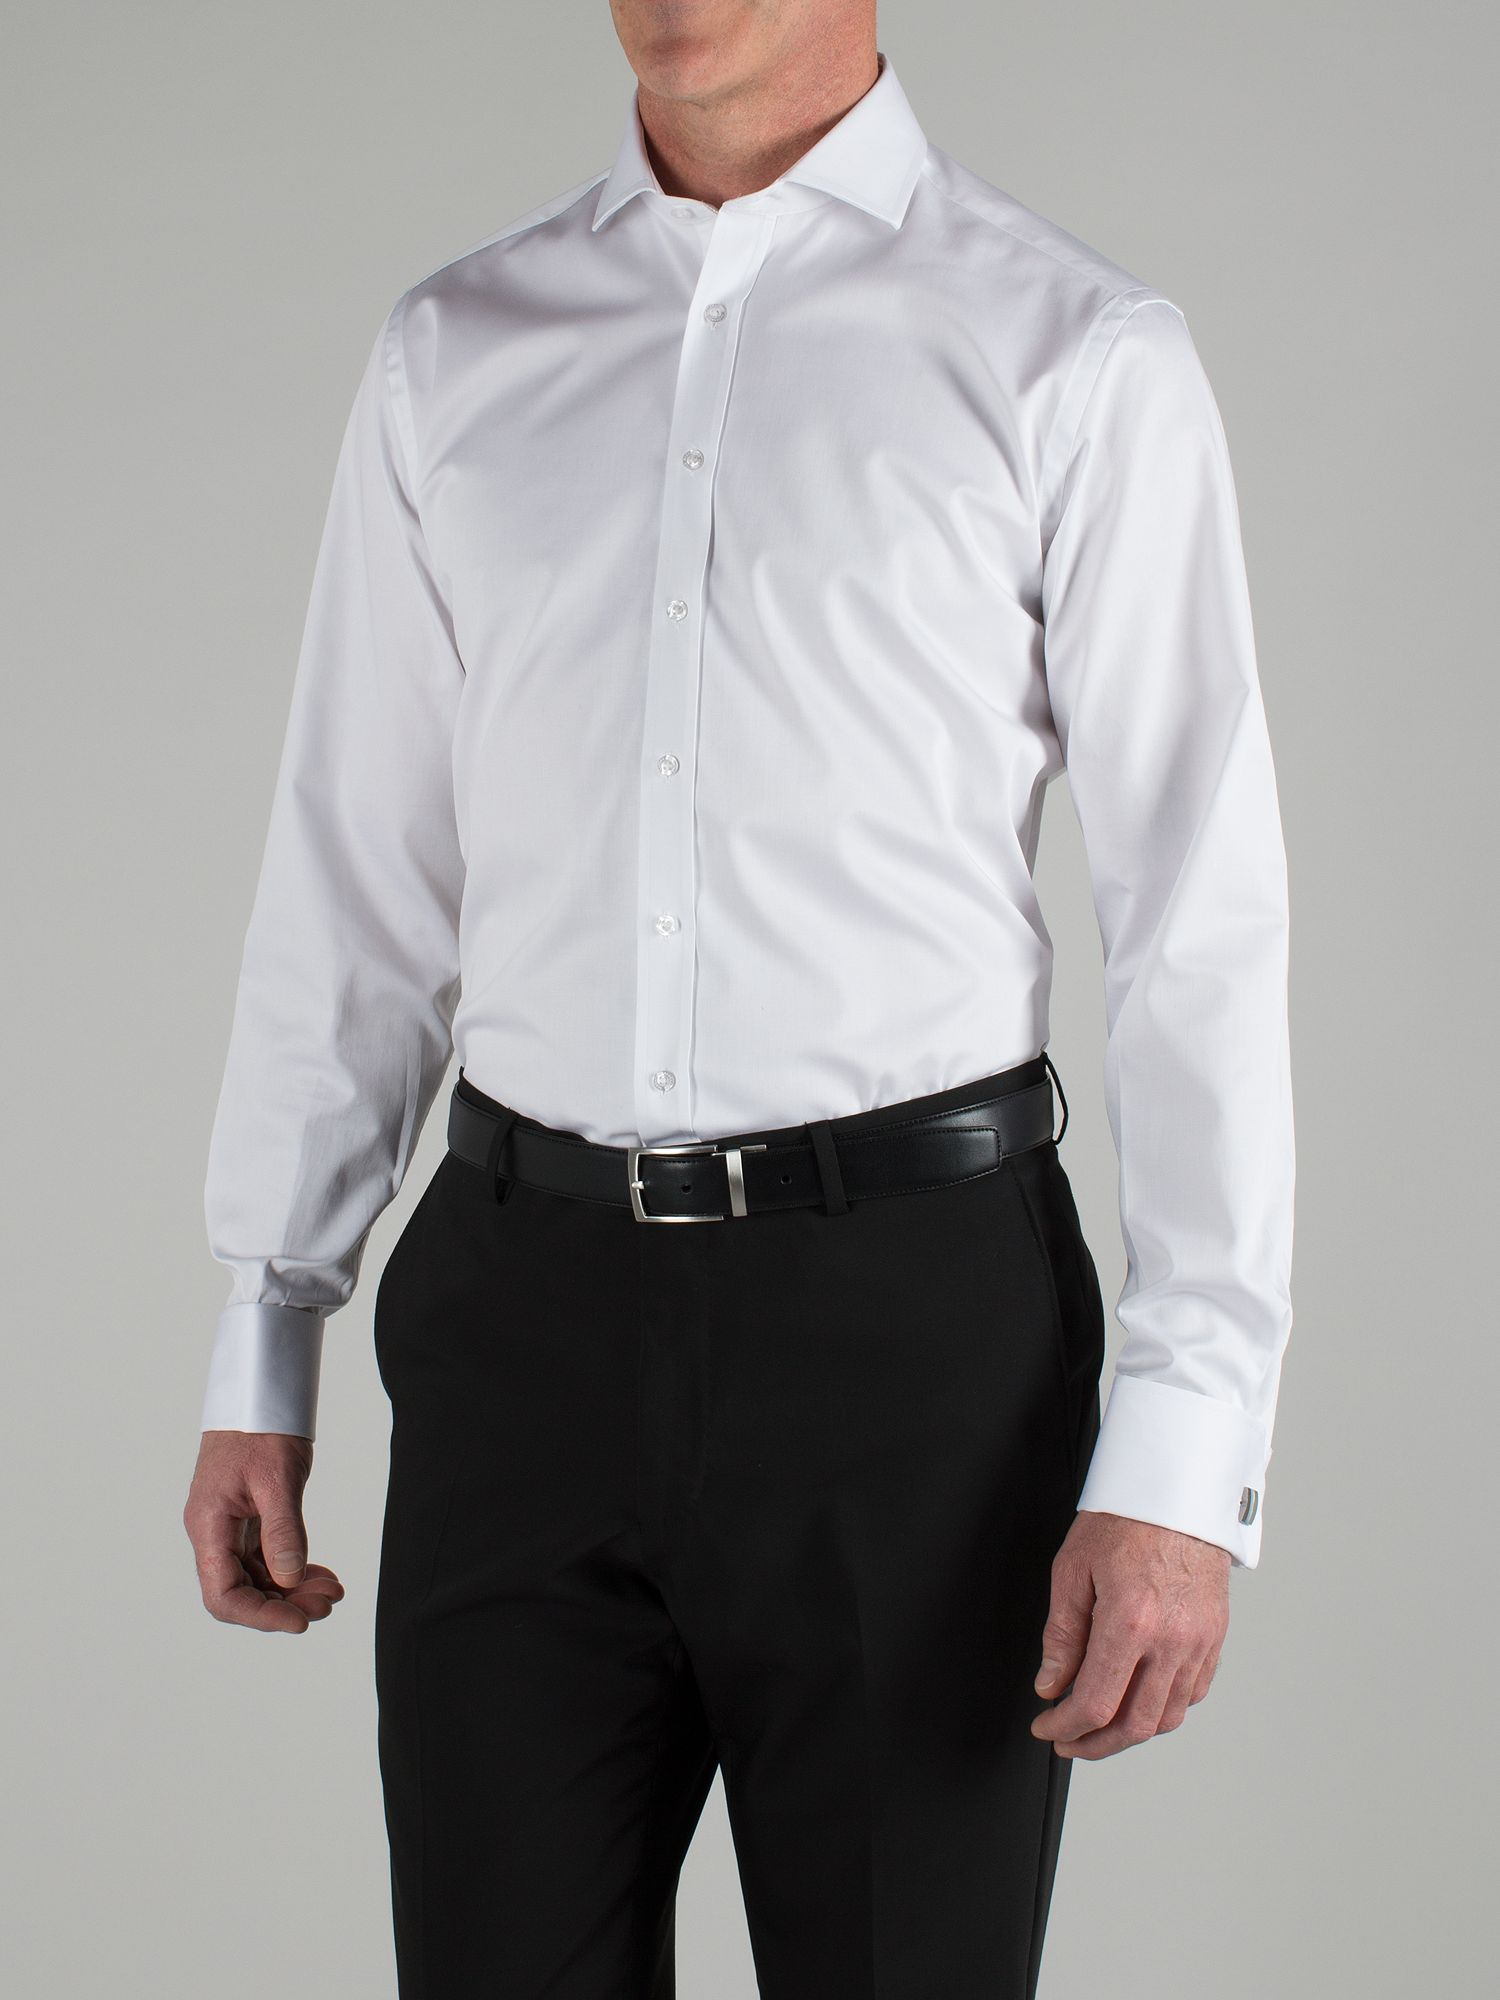 White sateen tailored shirt